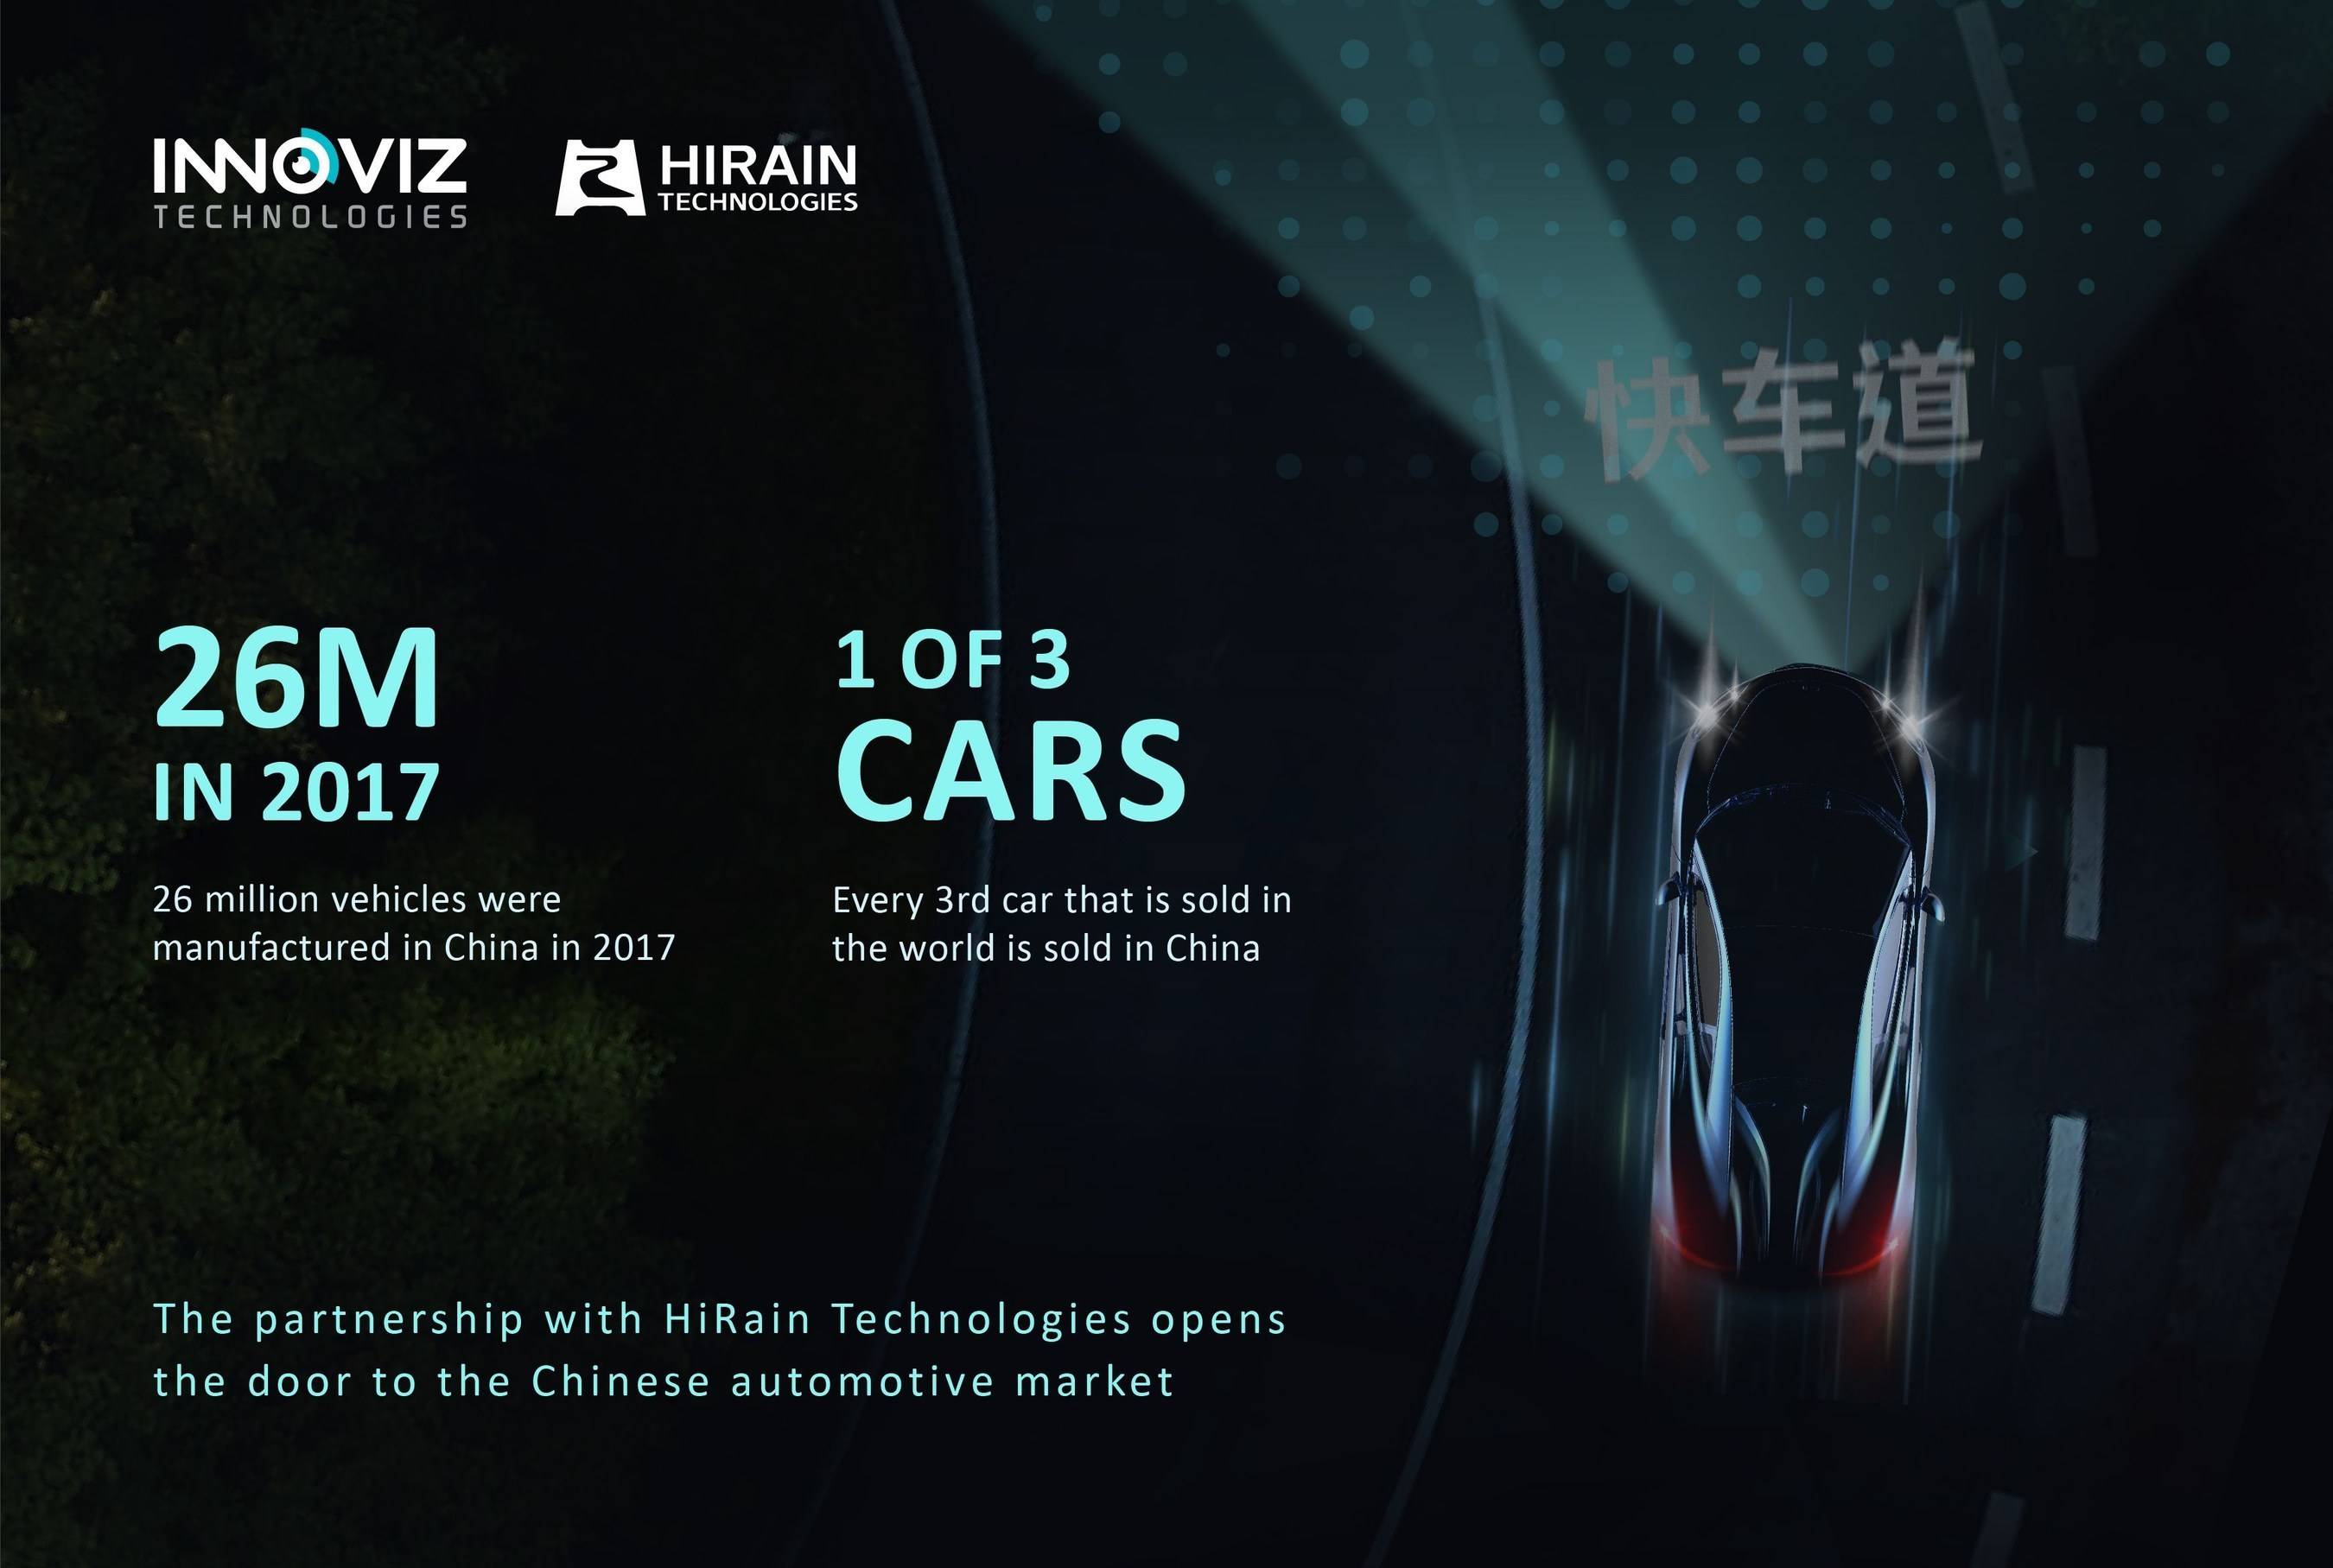 Innoviz and HiRain Partner to Bring High Performance LiDAR to Chinese Automotive OEMs